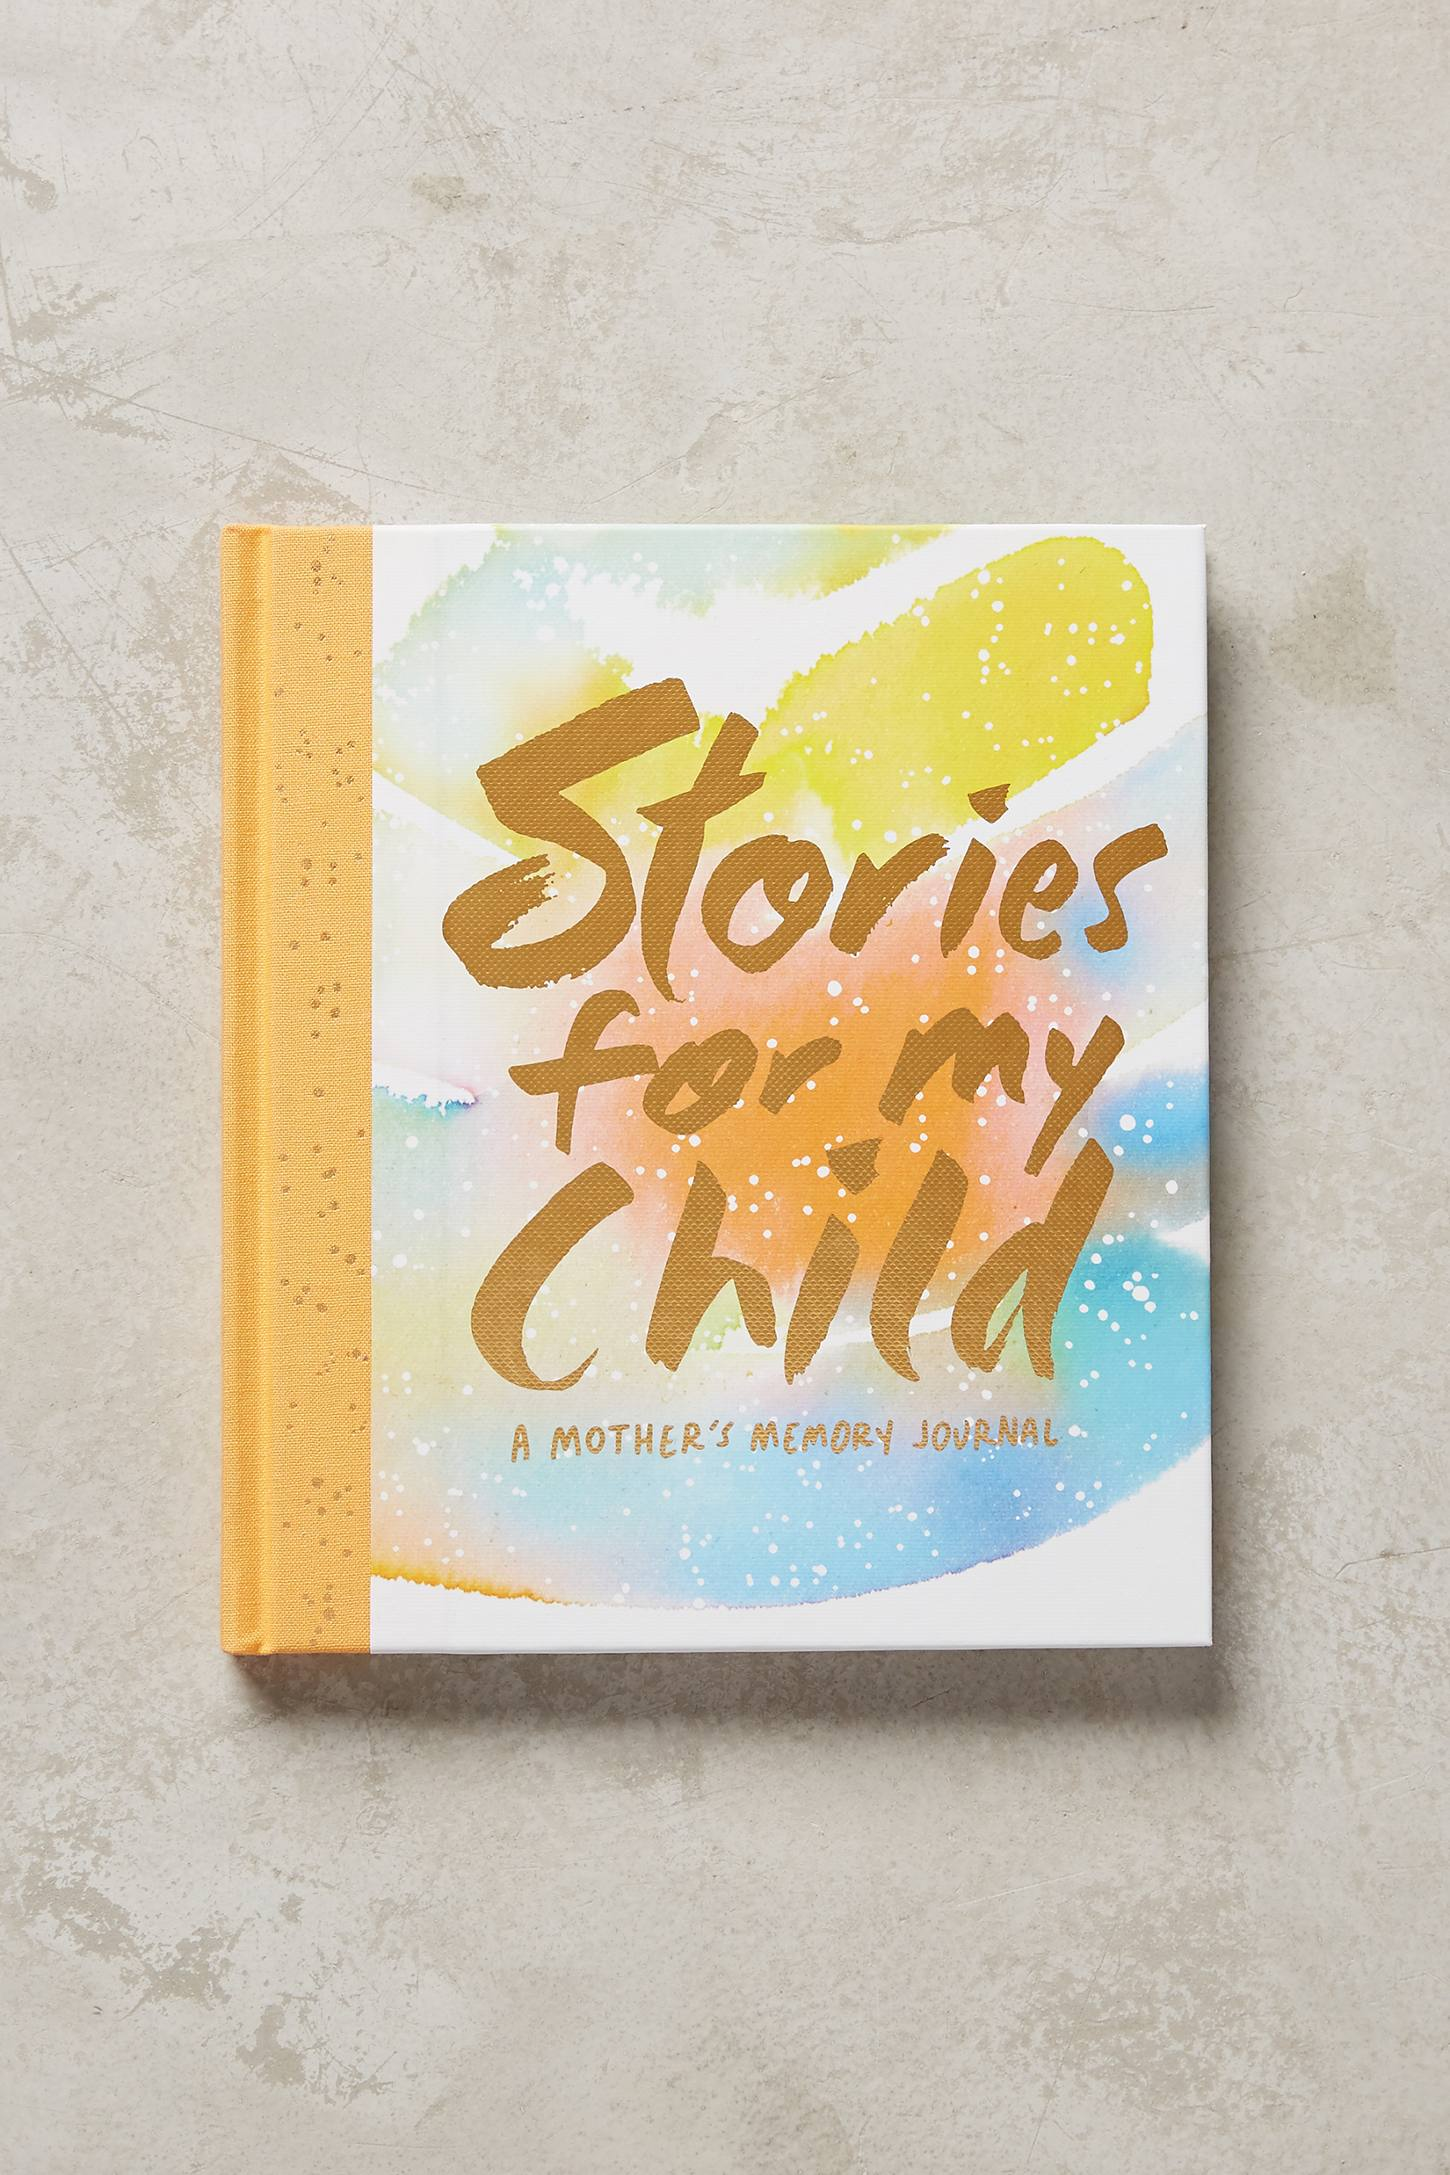 Slide View: 1: Stories For My Child